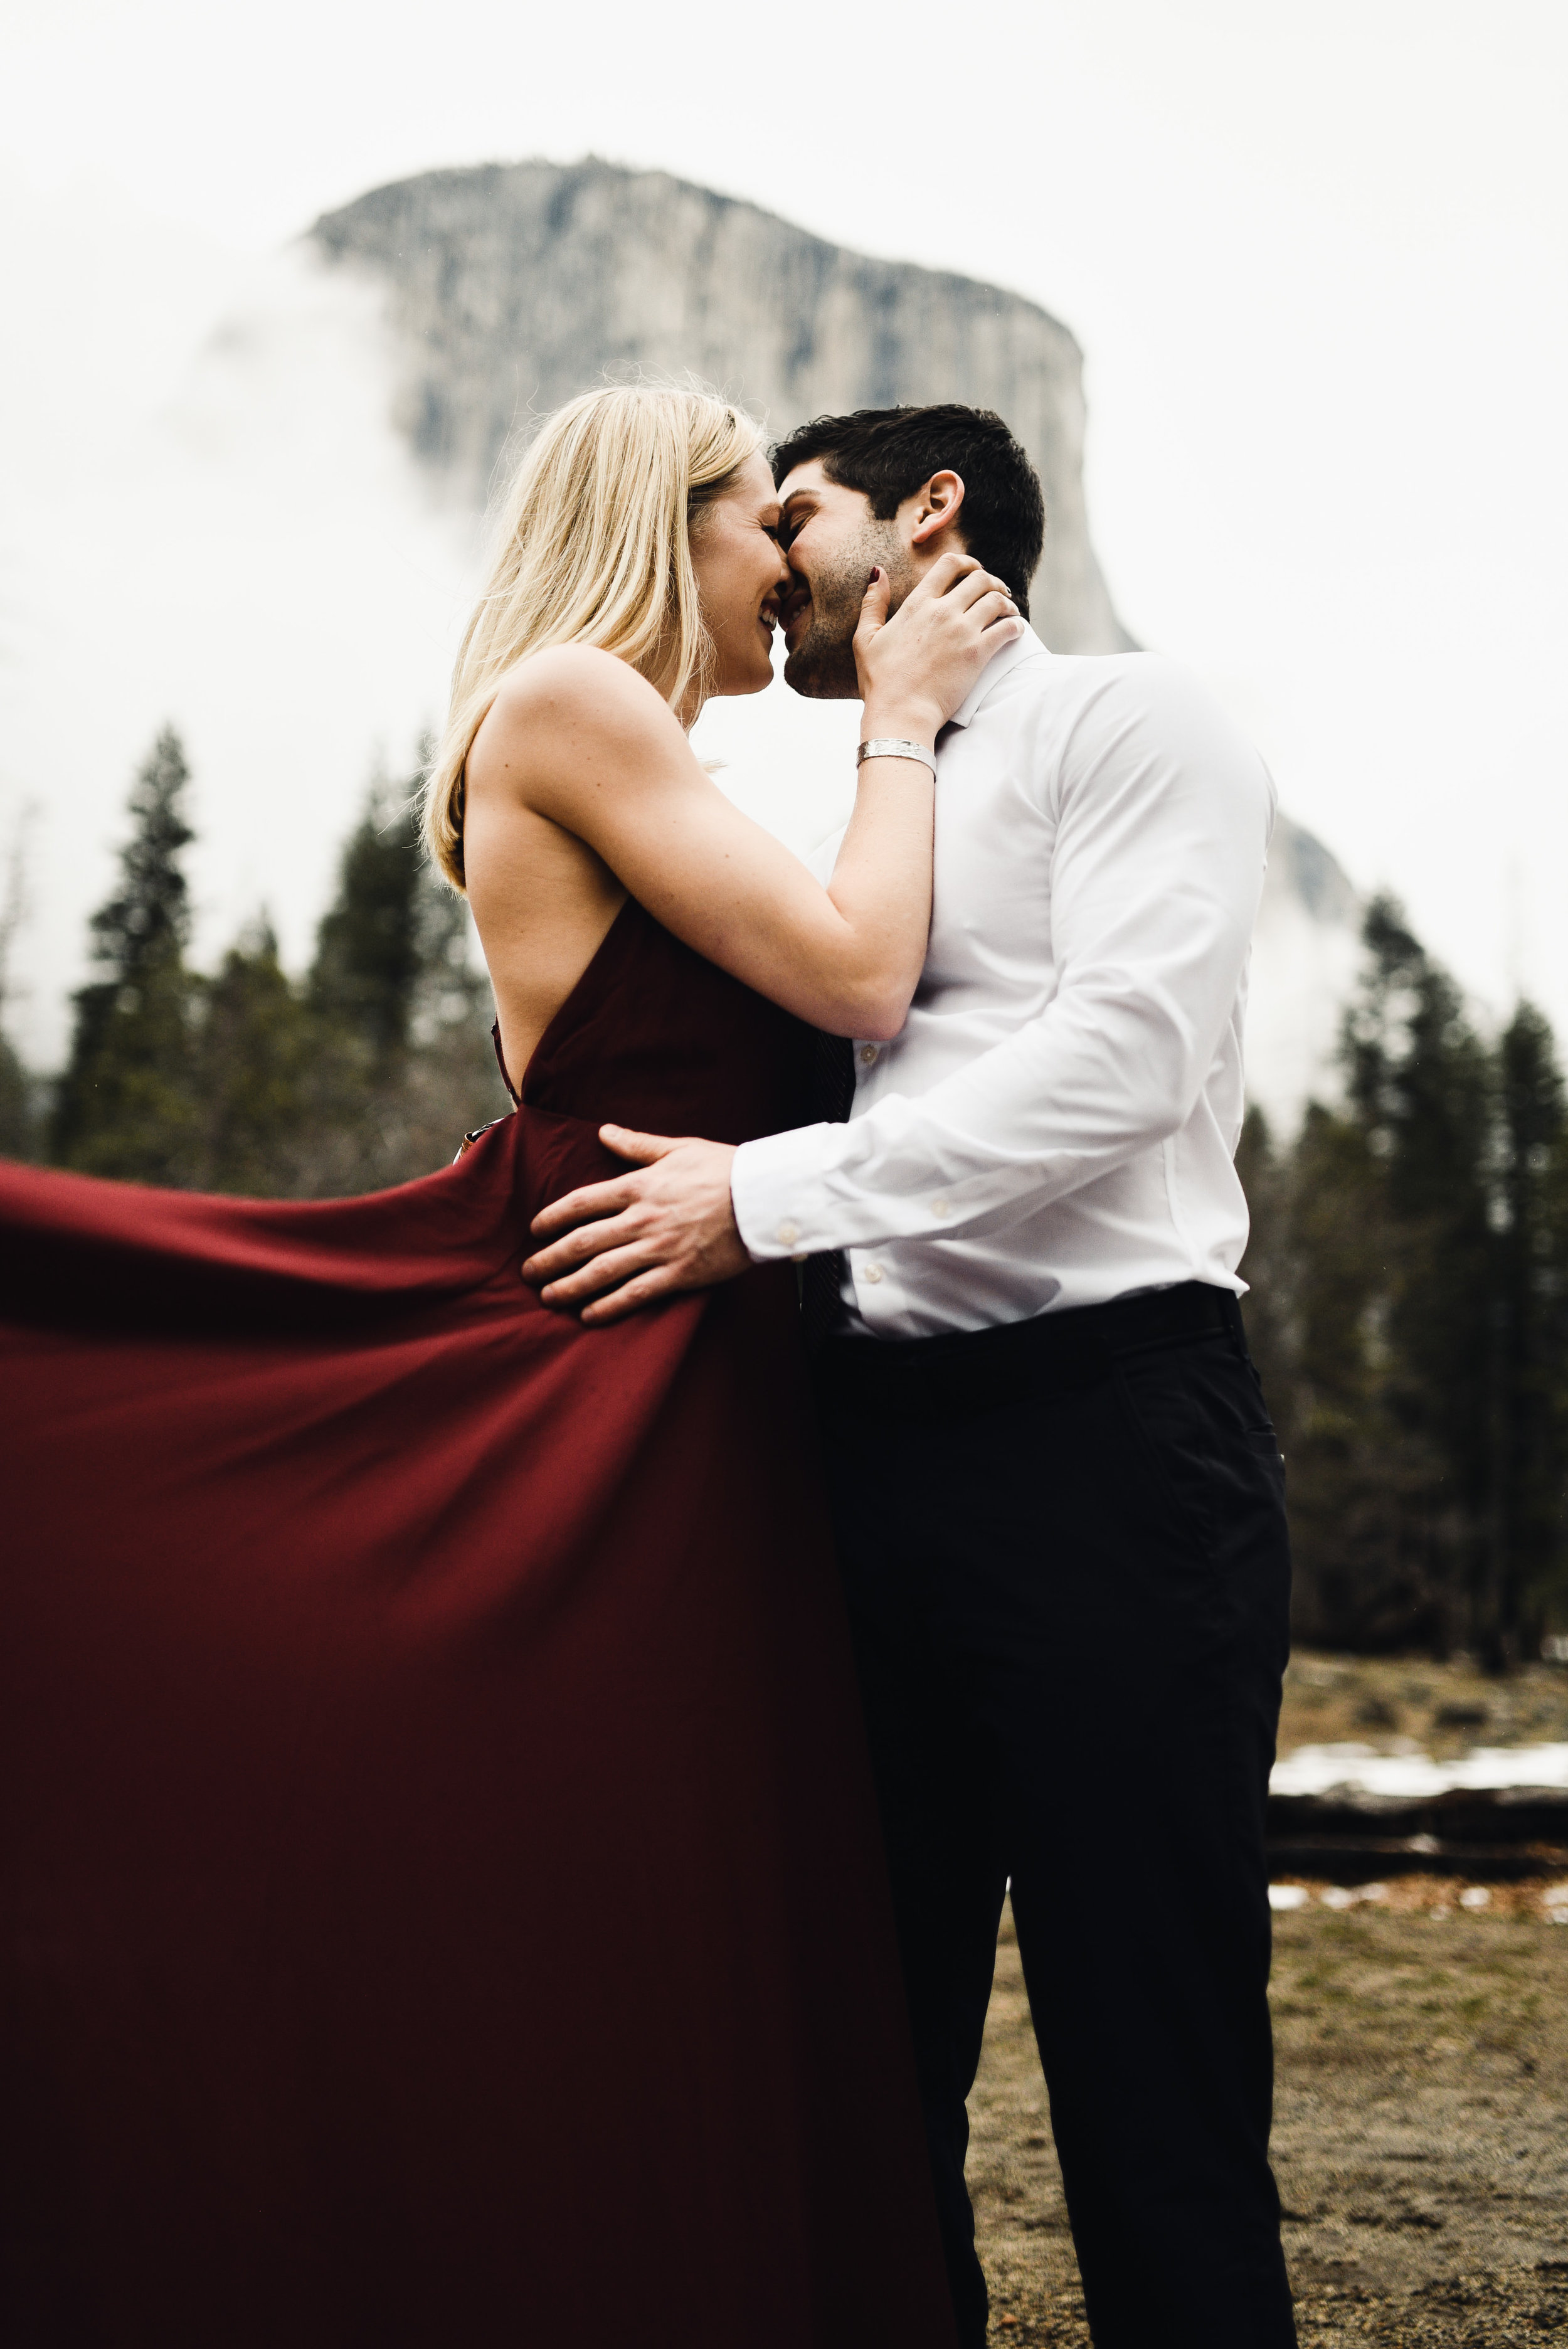 """""""Dress like you're going to a fancy wedding then we'll hike out into Yosemite and take engagement pictures."""" What better way to accentuate such an epic backdrop but with some snazzy duds? This ensures we got some framers!"""